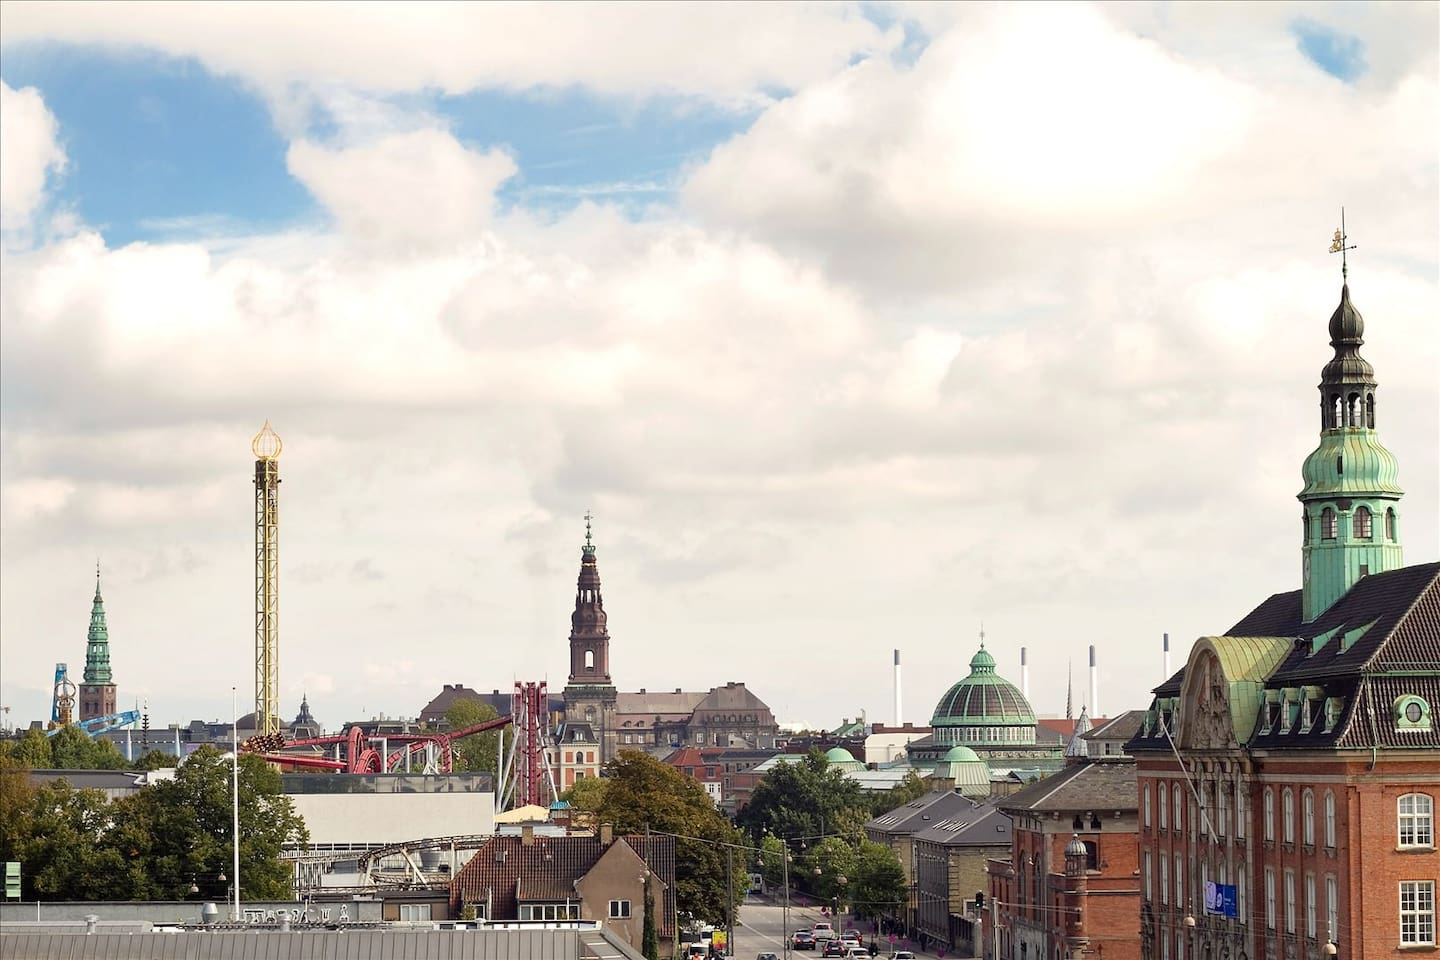 Tivoli Garden, Christiansborg ( the government building), Glyptotket (museum). View from our private living room and street door view as well, but not the view from the Airbnb room.